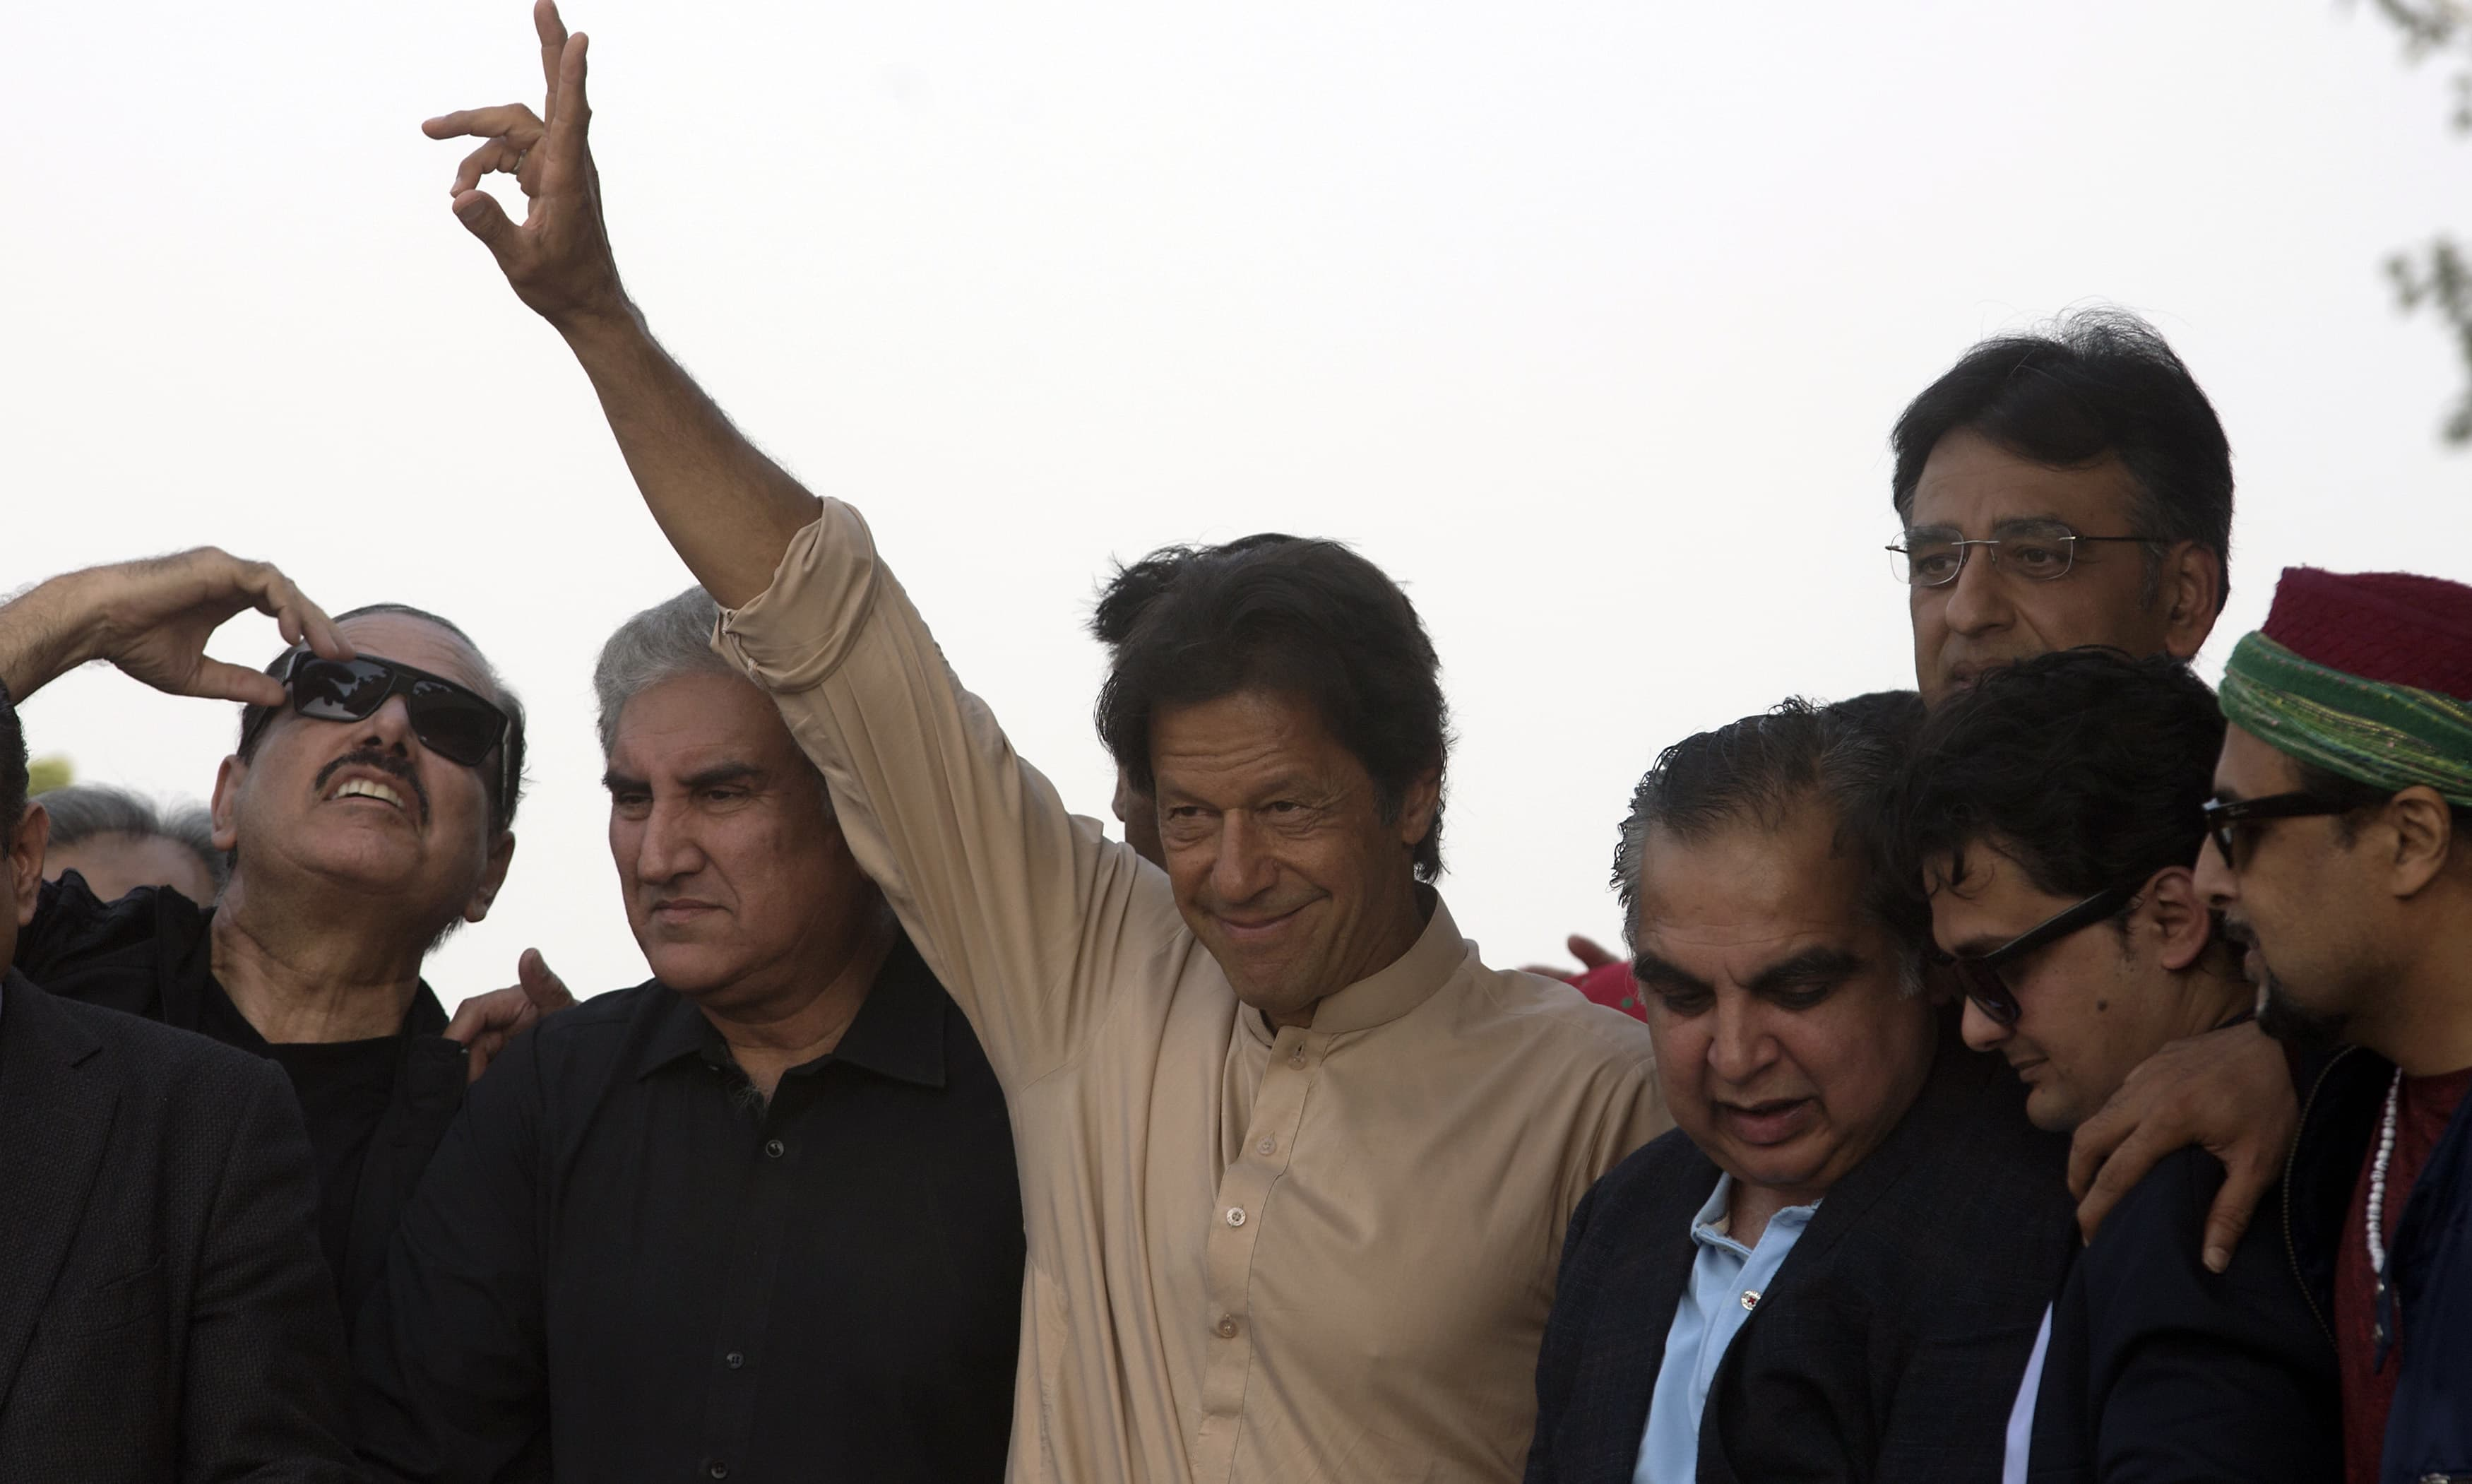 U-turn or victory? Politicians weigh in on PTI's dharna turnaround